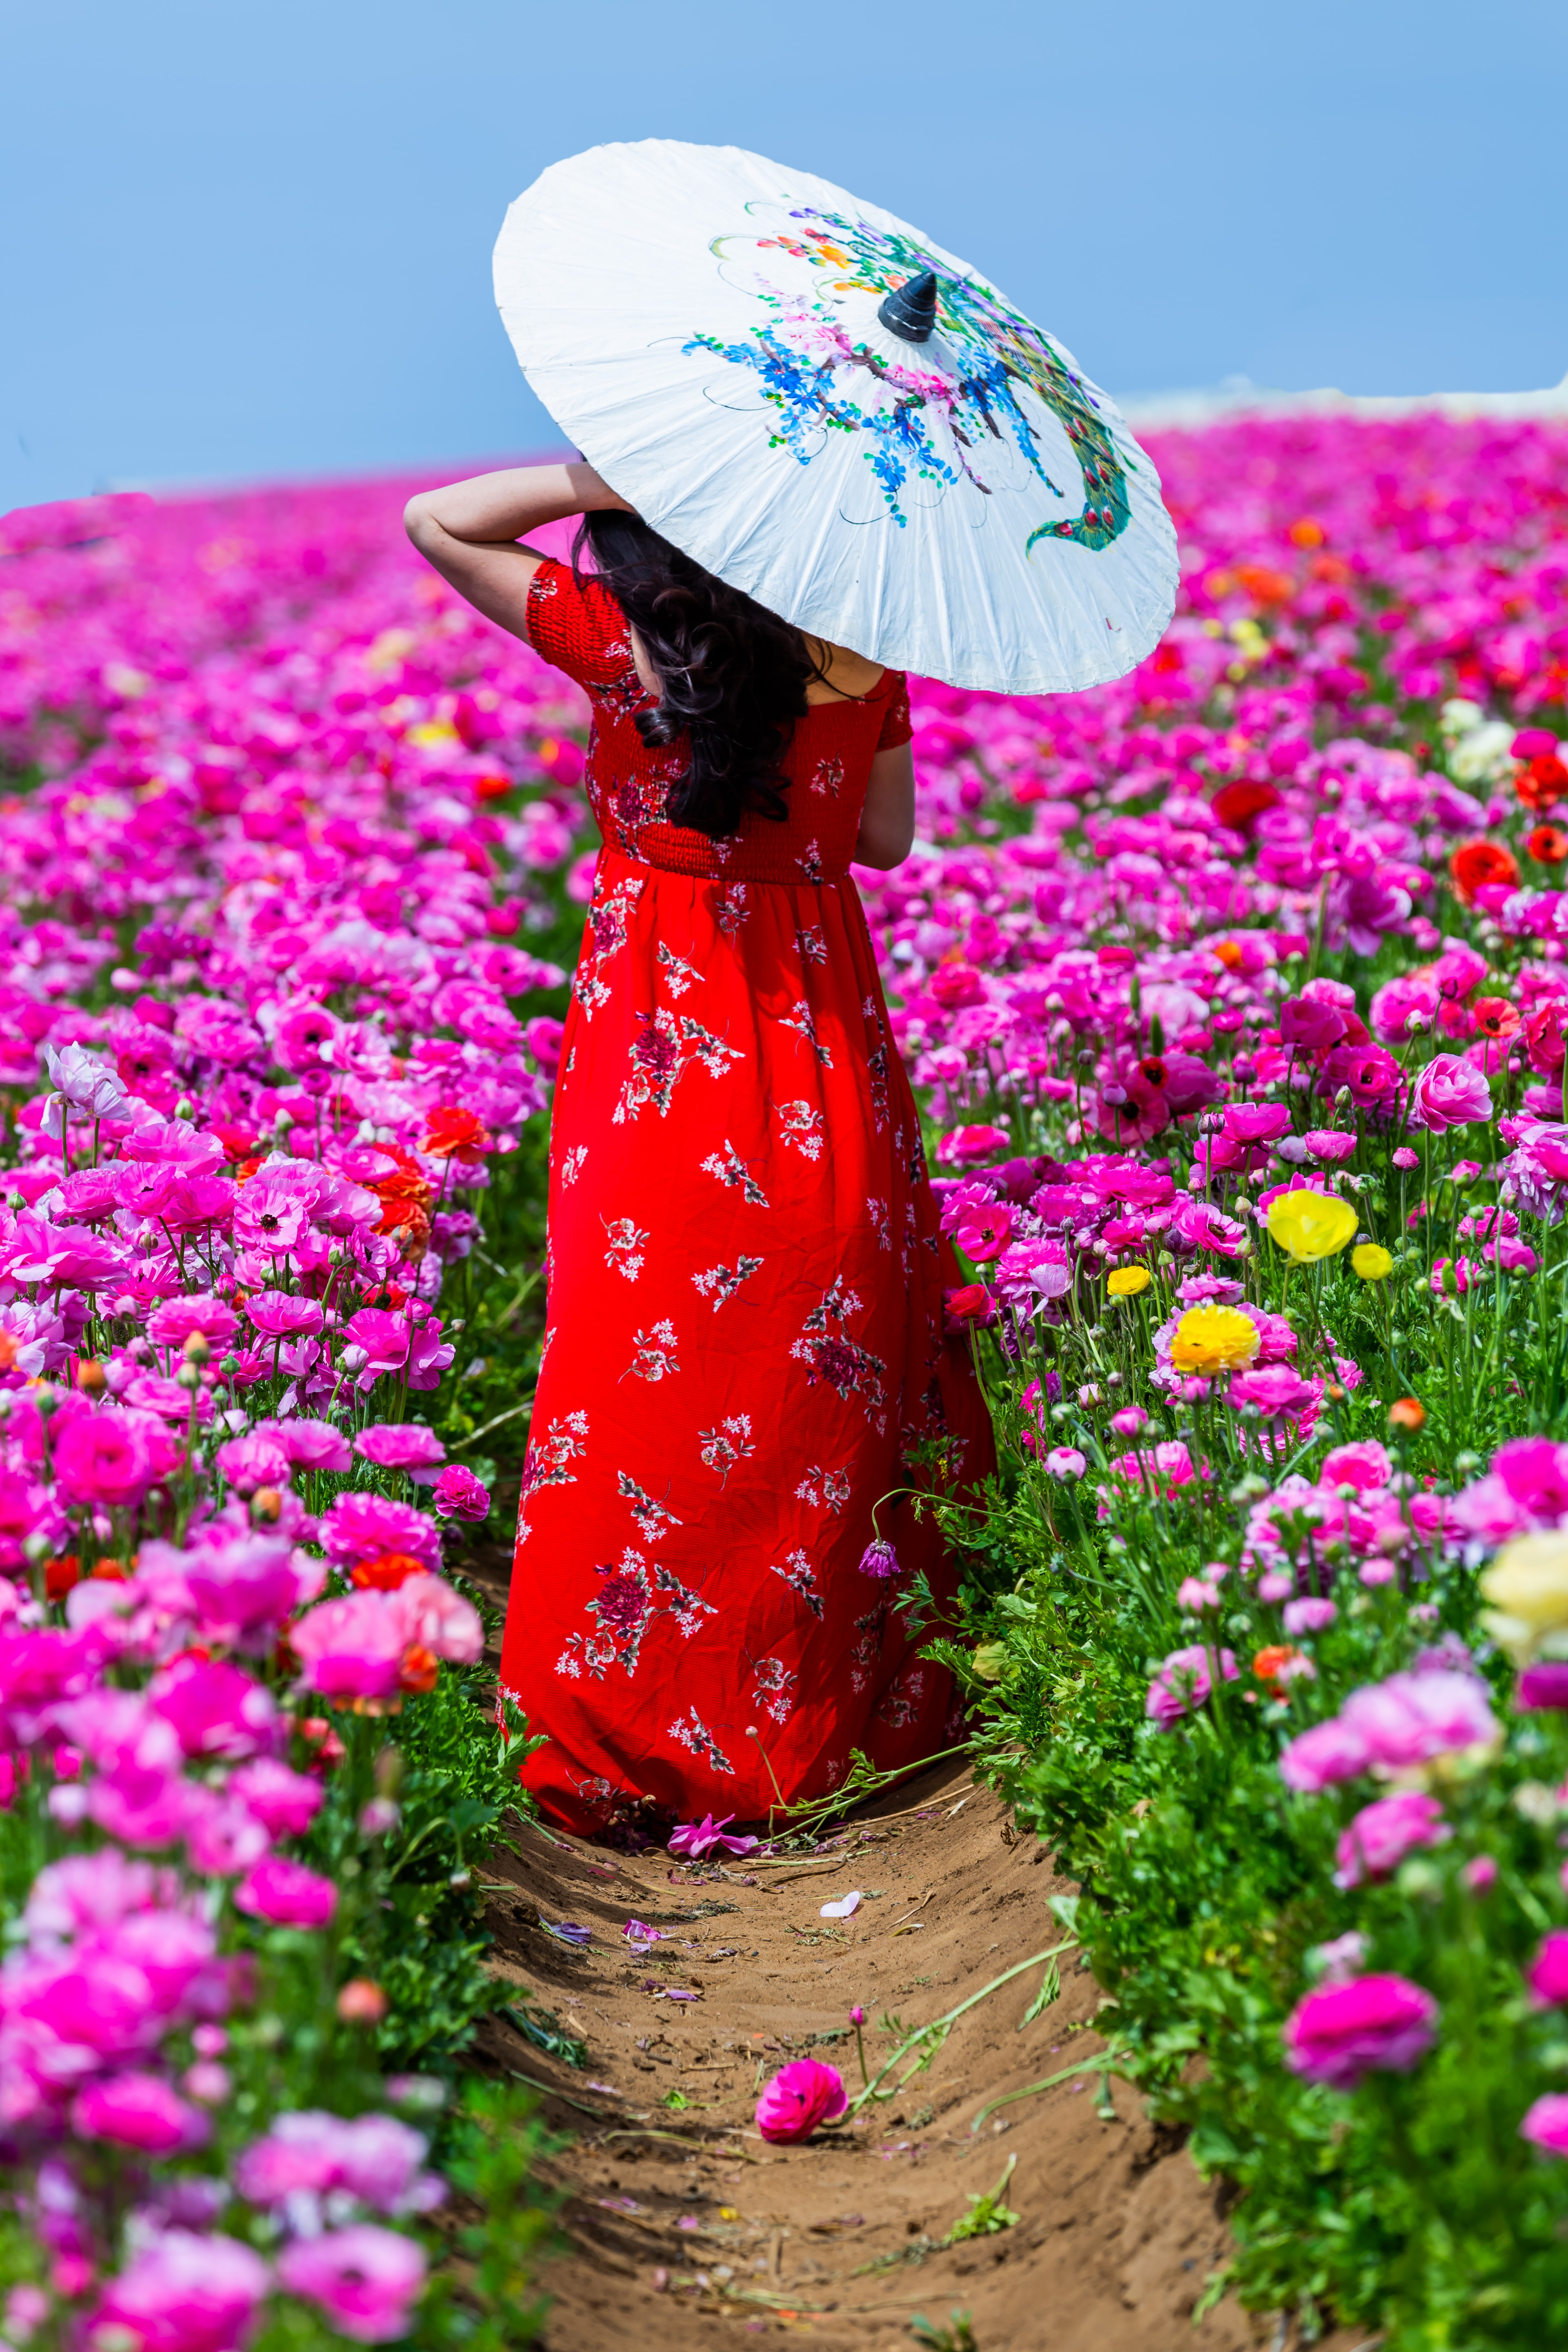 woman walking along aisle of flower field while using oil paper umbrella